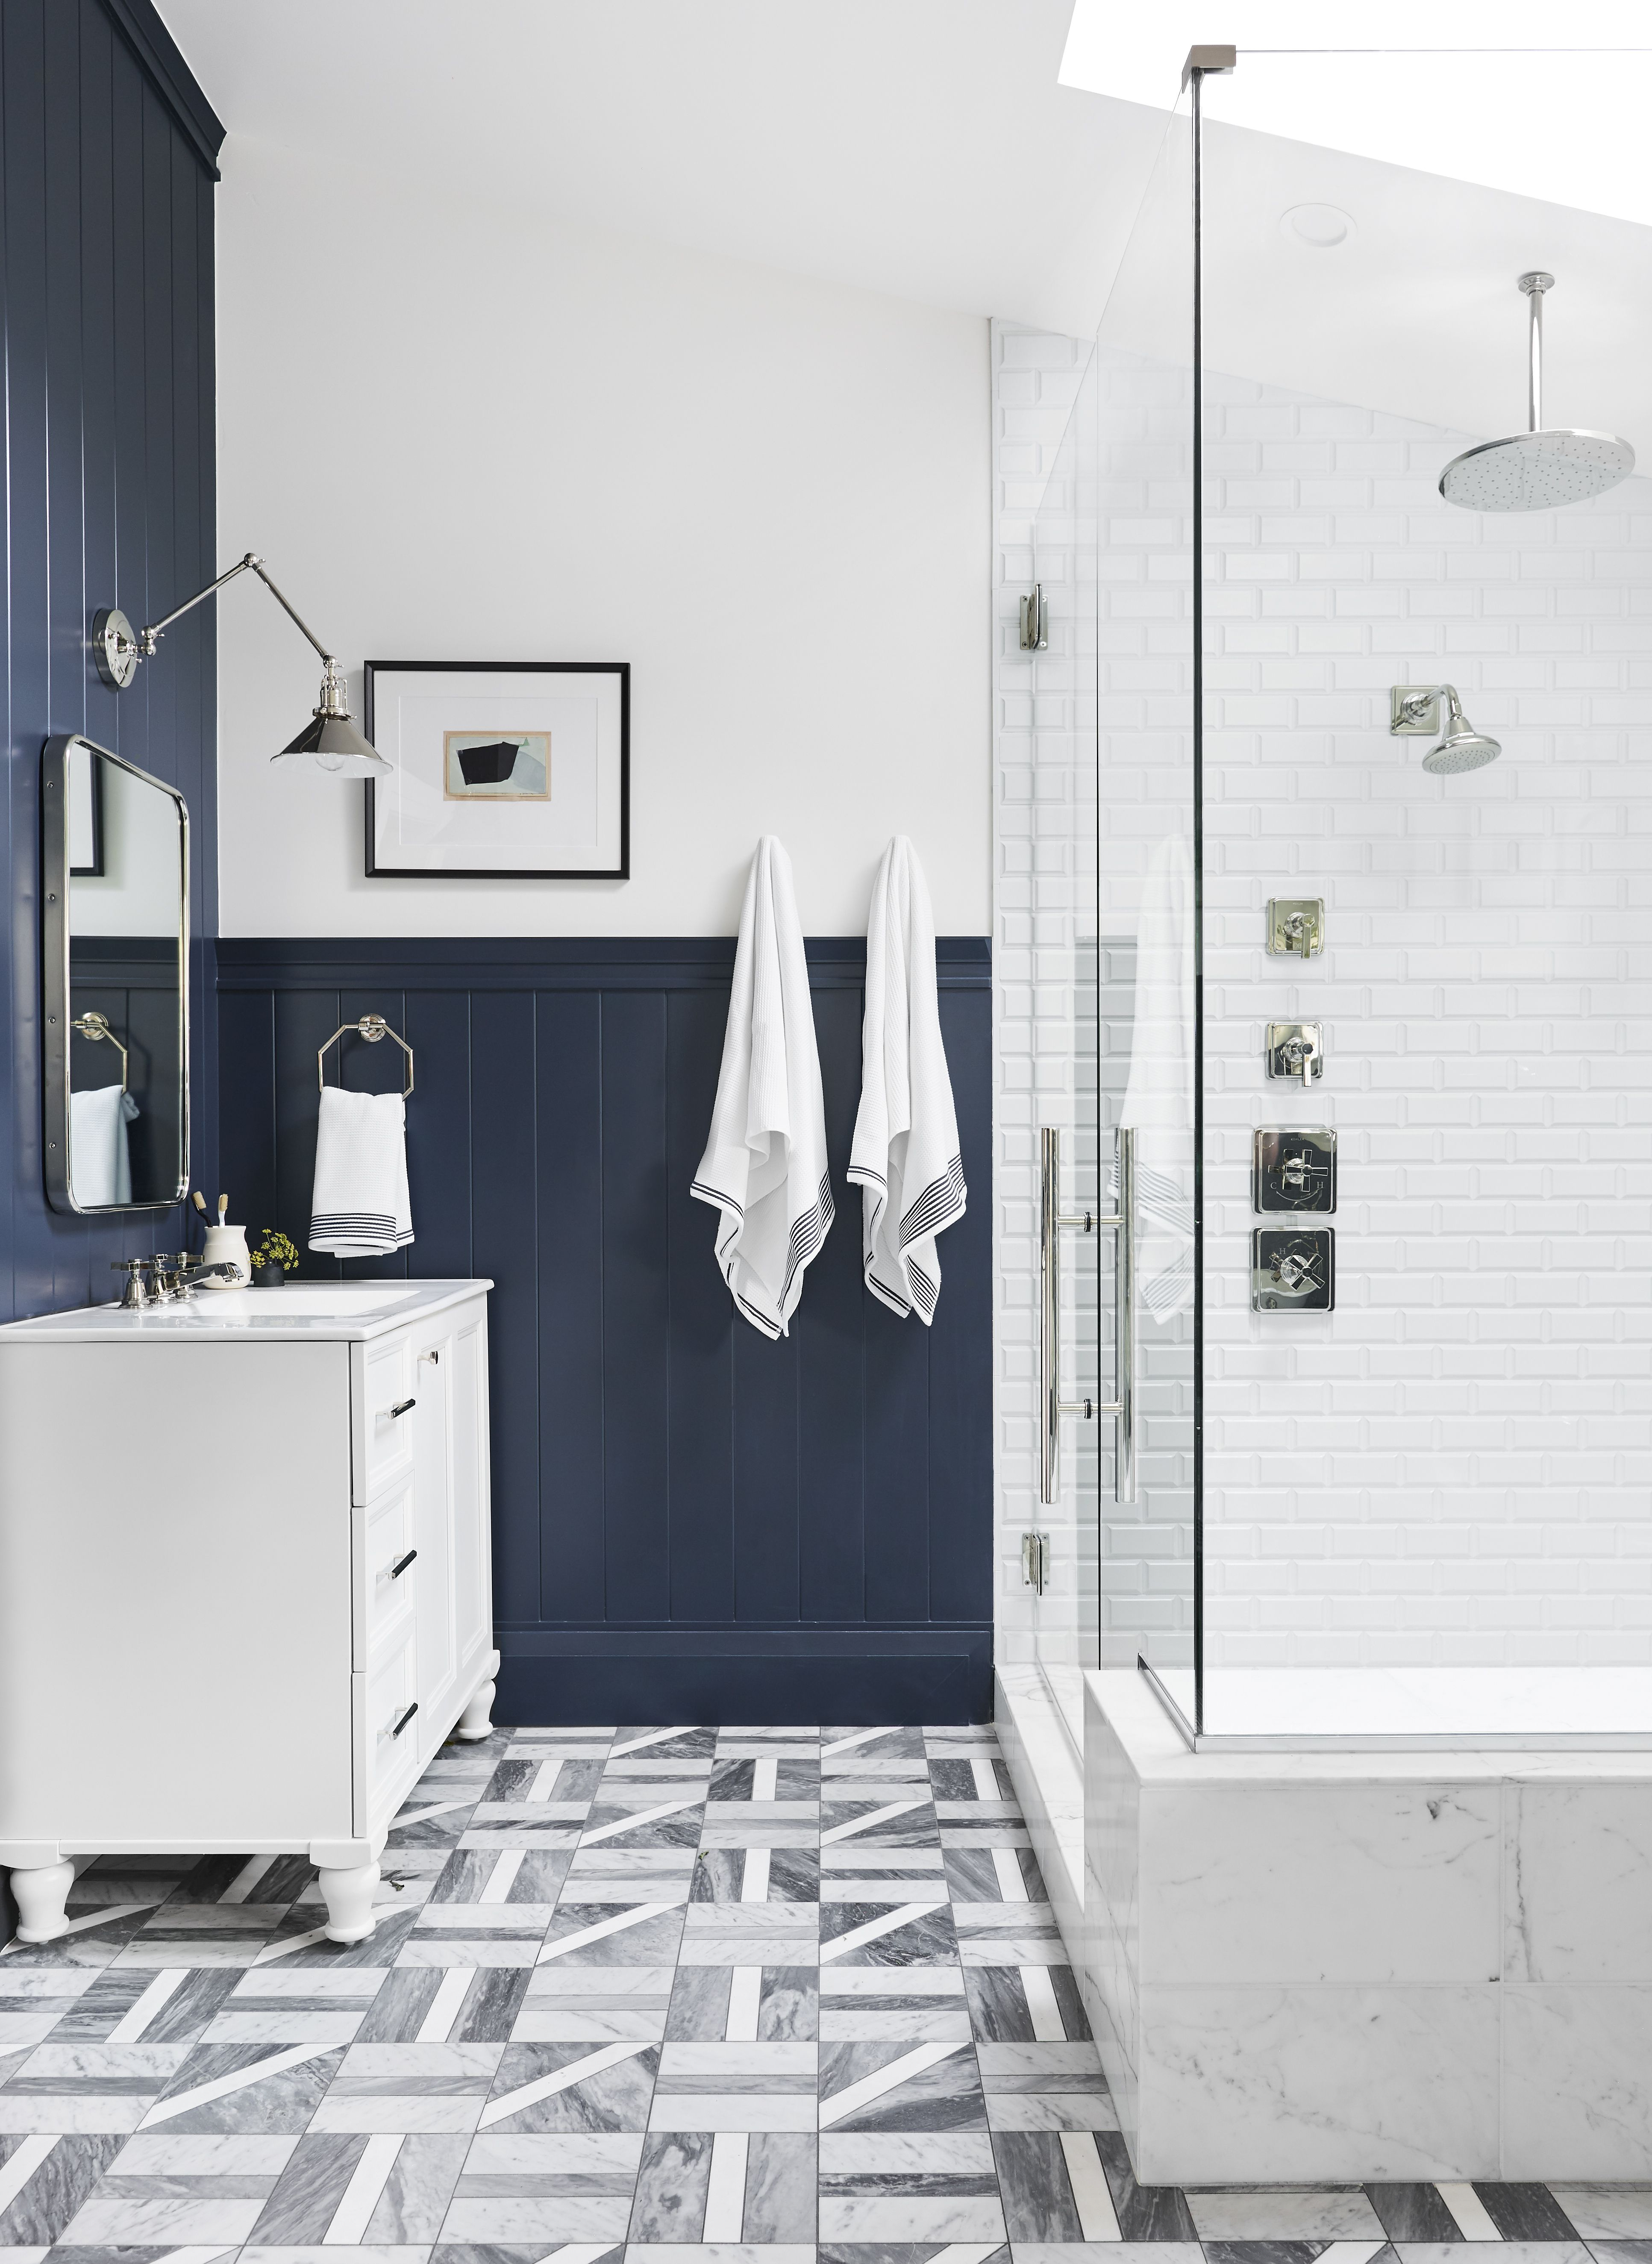 13 Bathroom Floor Tile Ideas to Give This Small Space Some ...